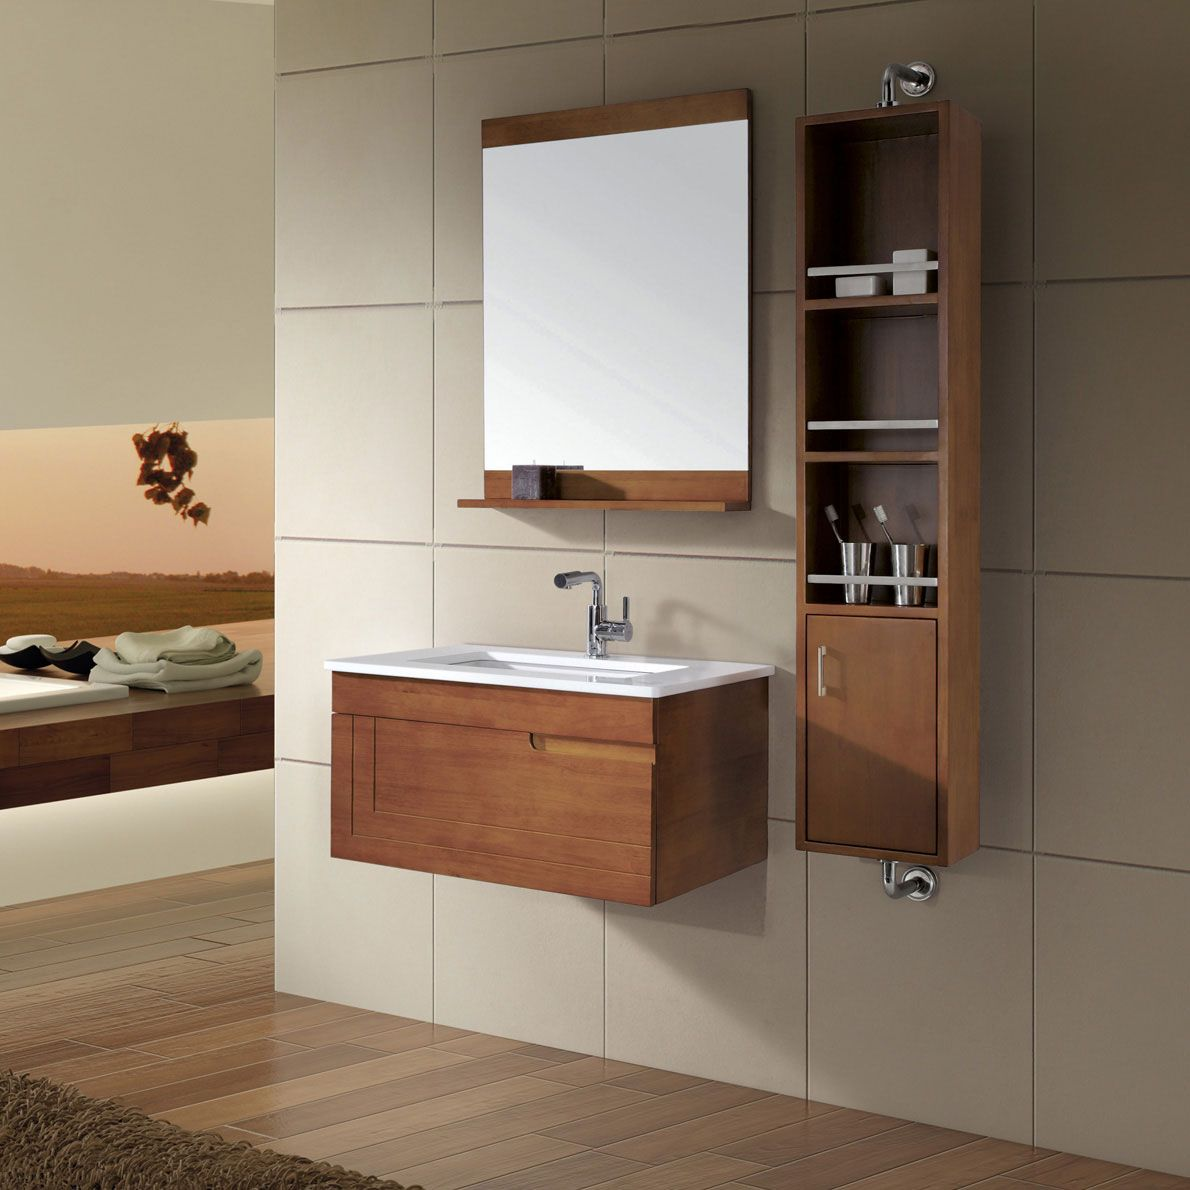 Attractive Wood Wall Mounted Storages And Mirror With Shallow Shelf On Stylish Small Bathroom Vanity